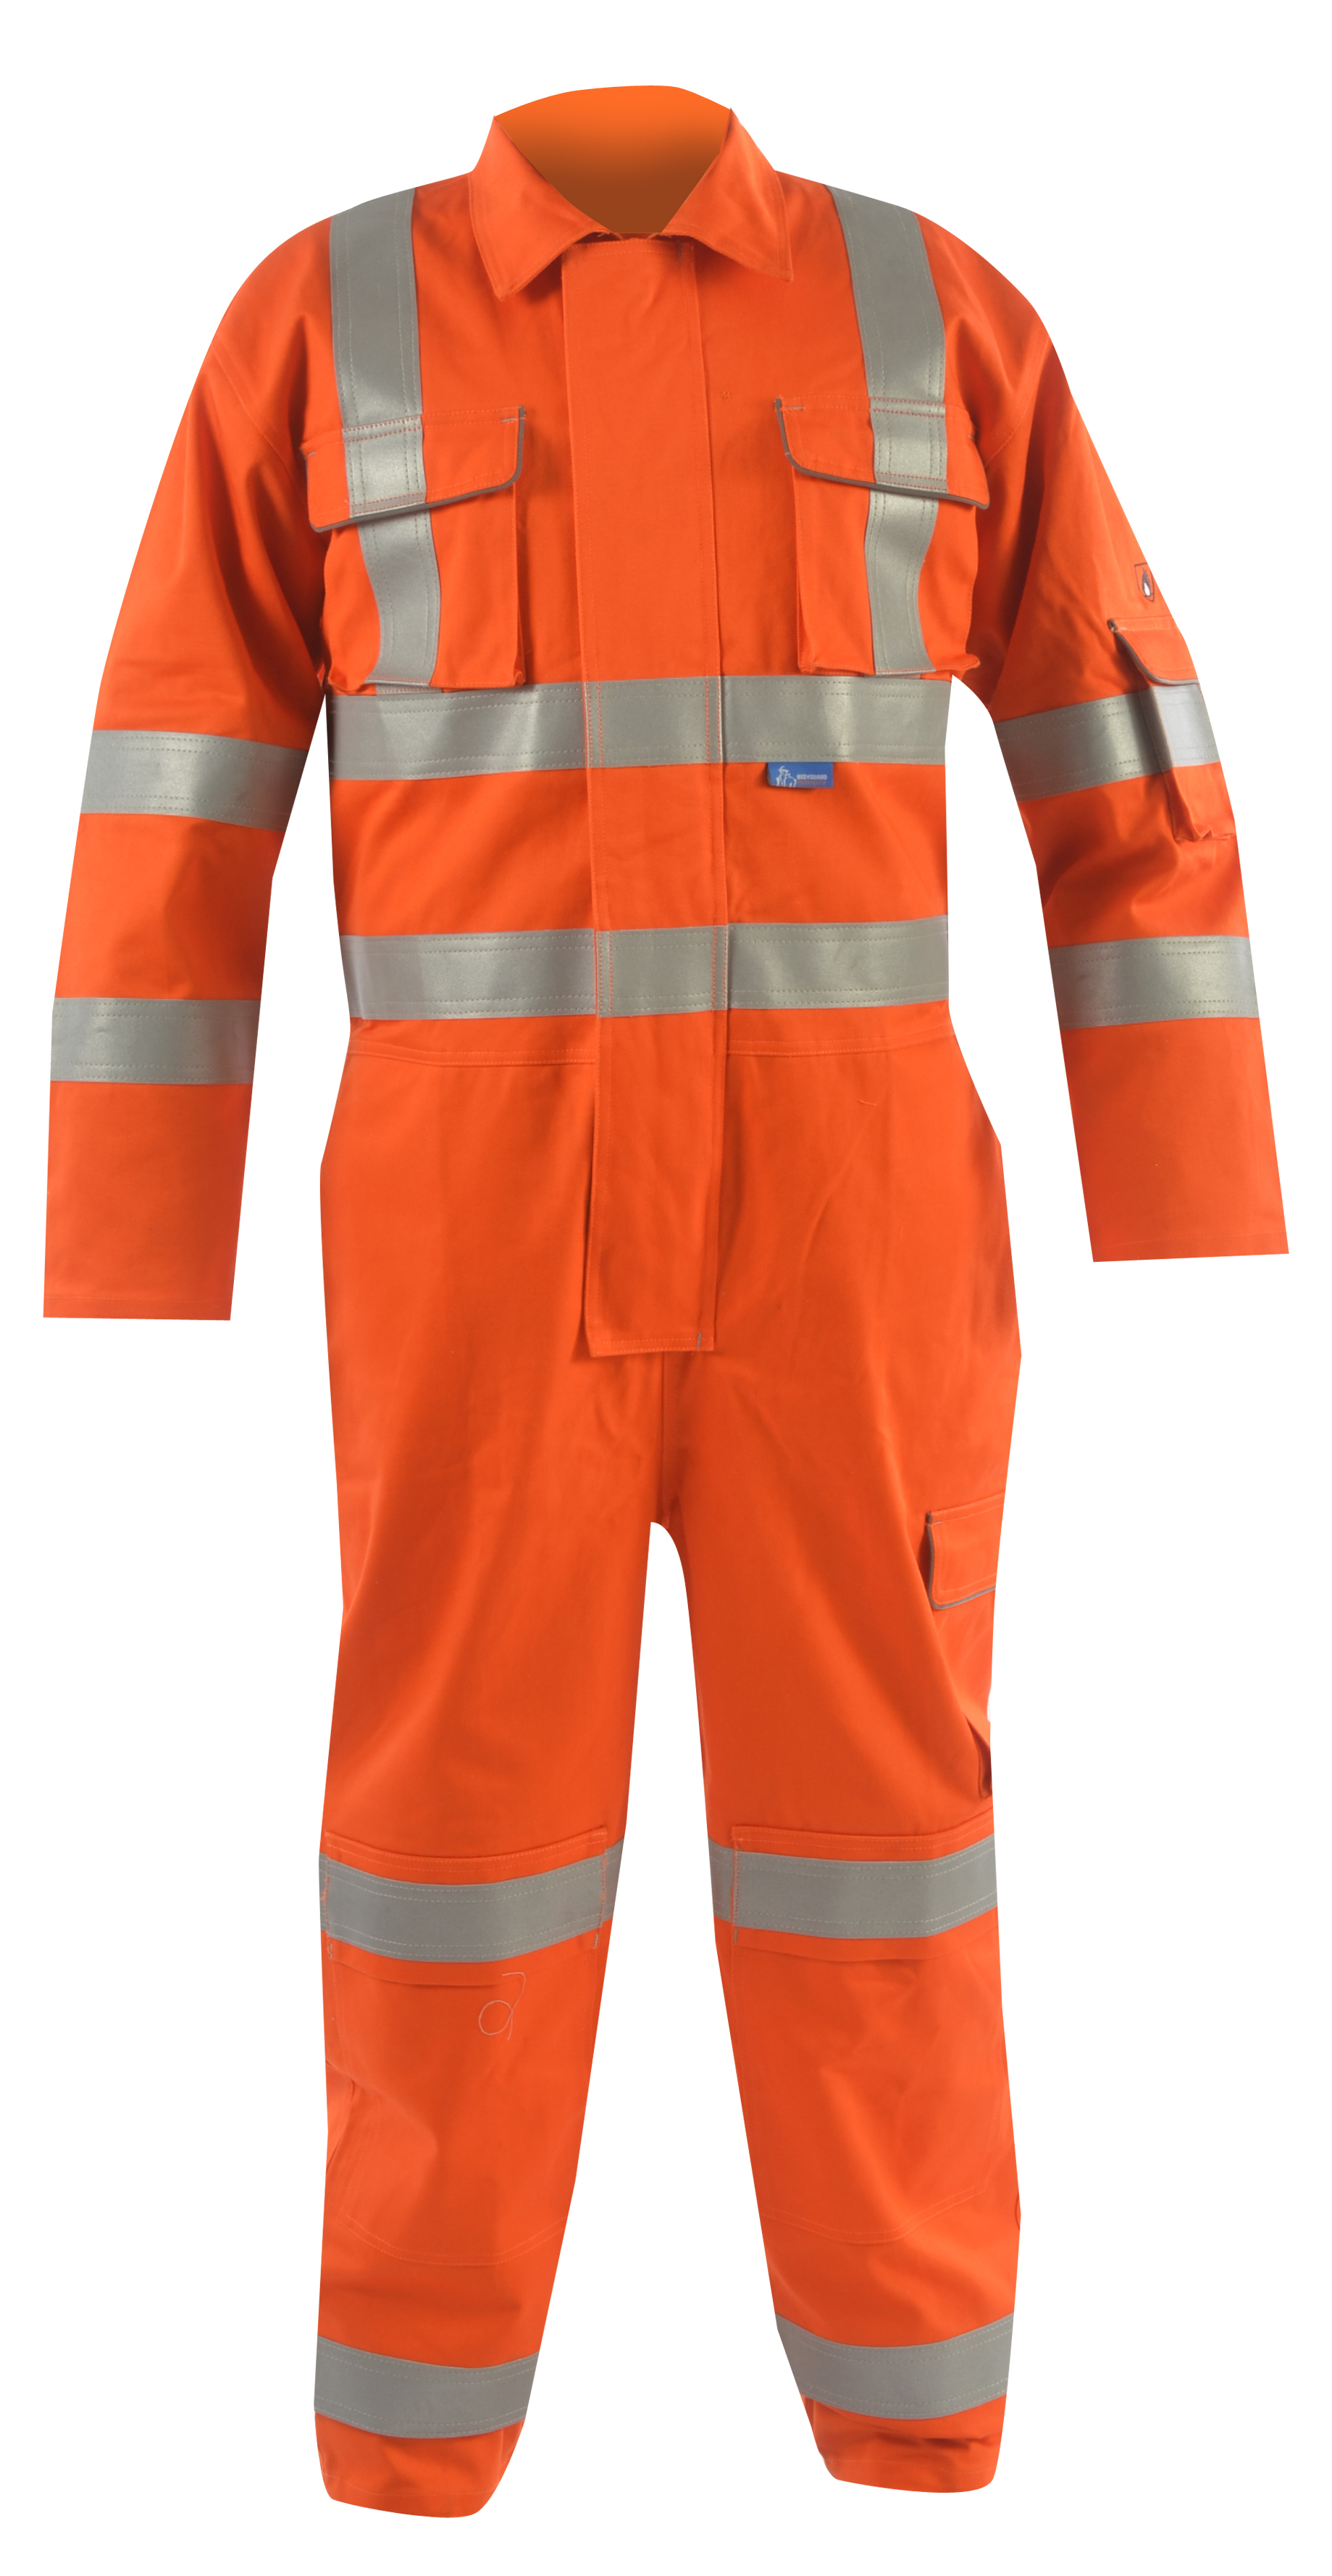 bodyguard-Coveralls-Hi-Vis-Flame-Retardant-Rail-Coverall